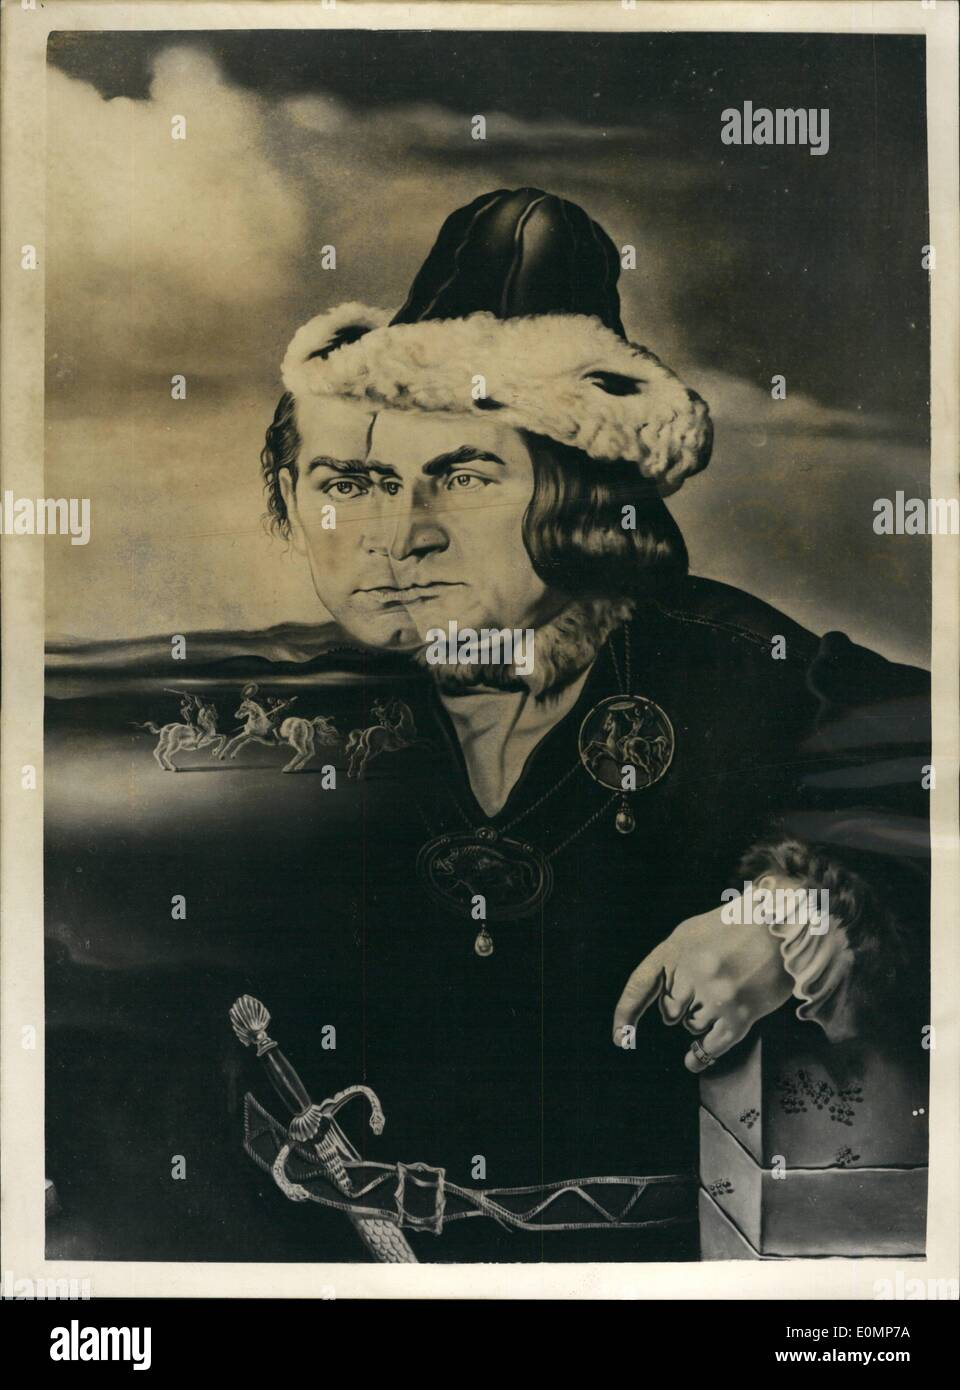 Apr. 04, 1956 - Olivier - by Dali: This is a black and white reproduction of the portrait in oils by Salvador Dali of Sir Laurence Olivier in his role of Richard II, the Laurence Olivier London Film. The portrait was commissioned by Mr. Robert Dowling of New York, and preliminary sketches were made during the filming of this production. The portrait was finally completed Salvador Dali's residence in Spain. Stock Photo